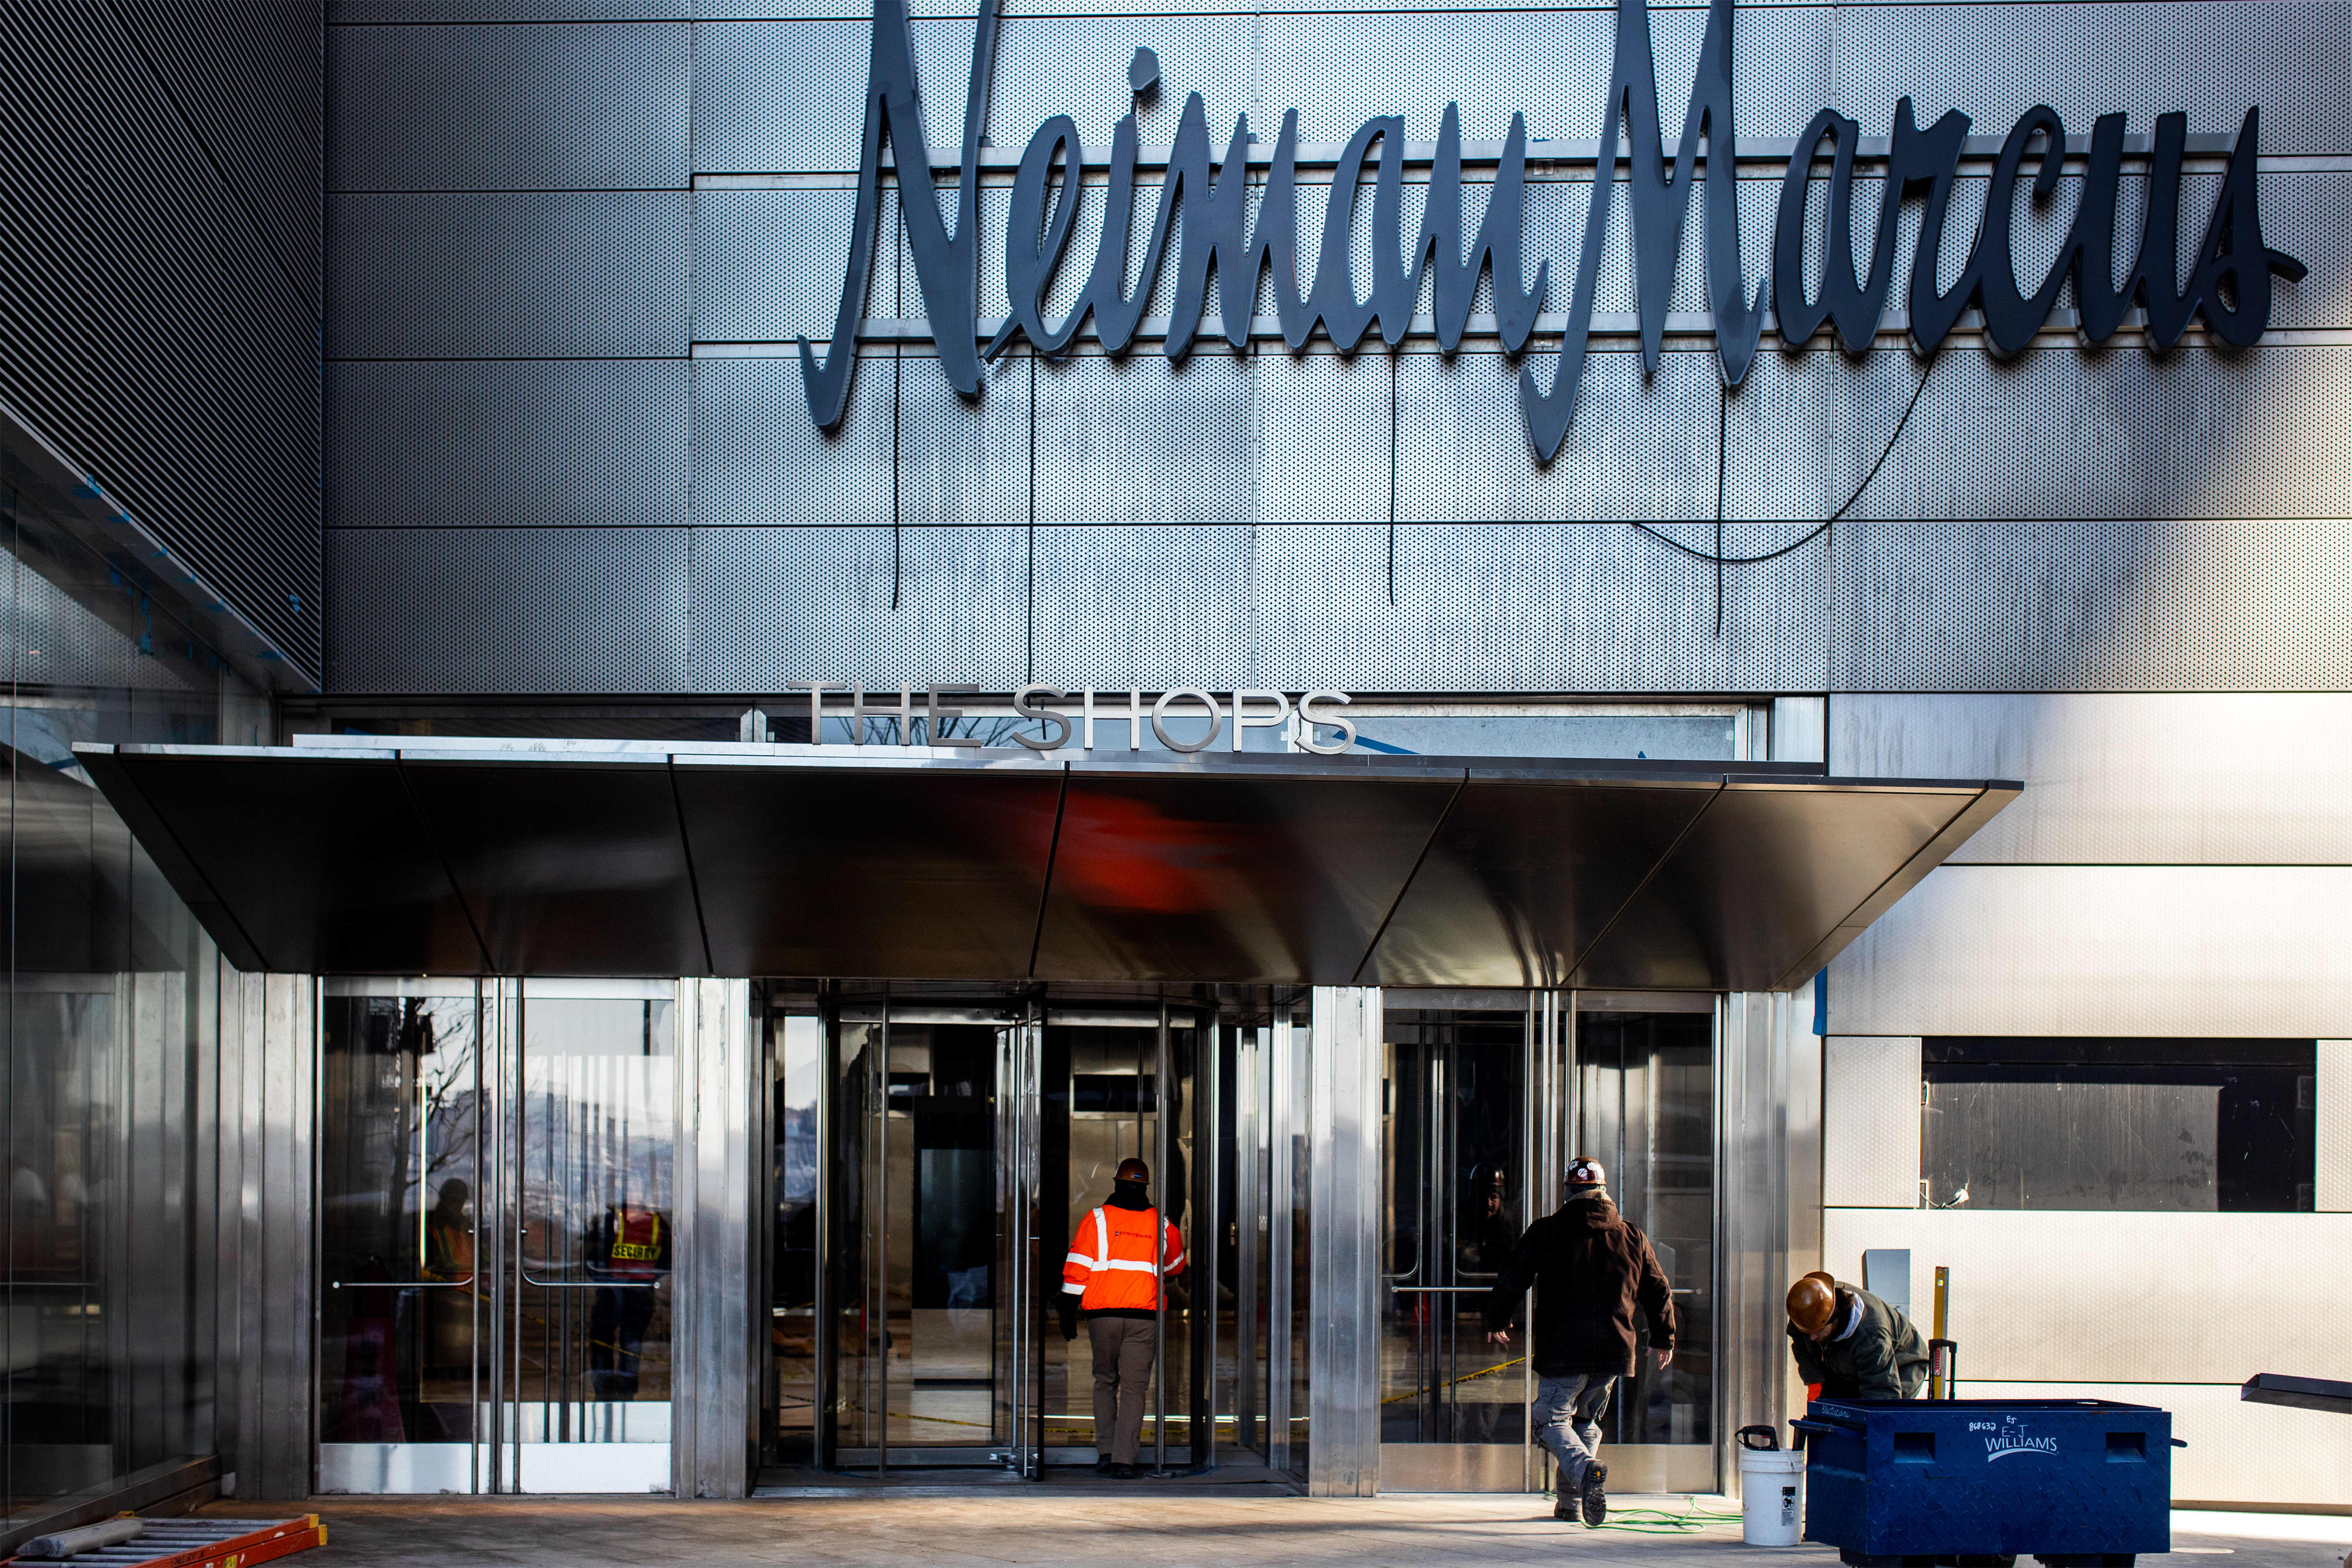 Neiman Marcus files for bankruptcy as it struggles with debt, coronavirus